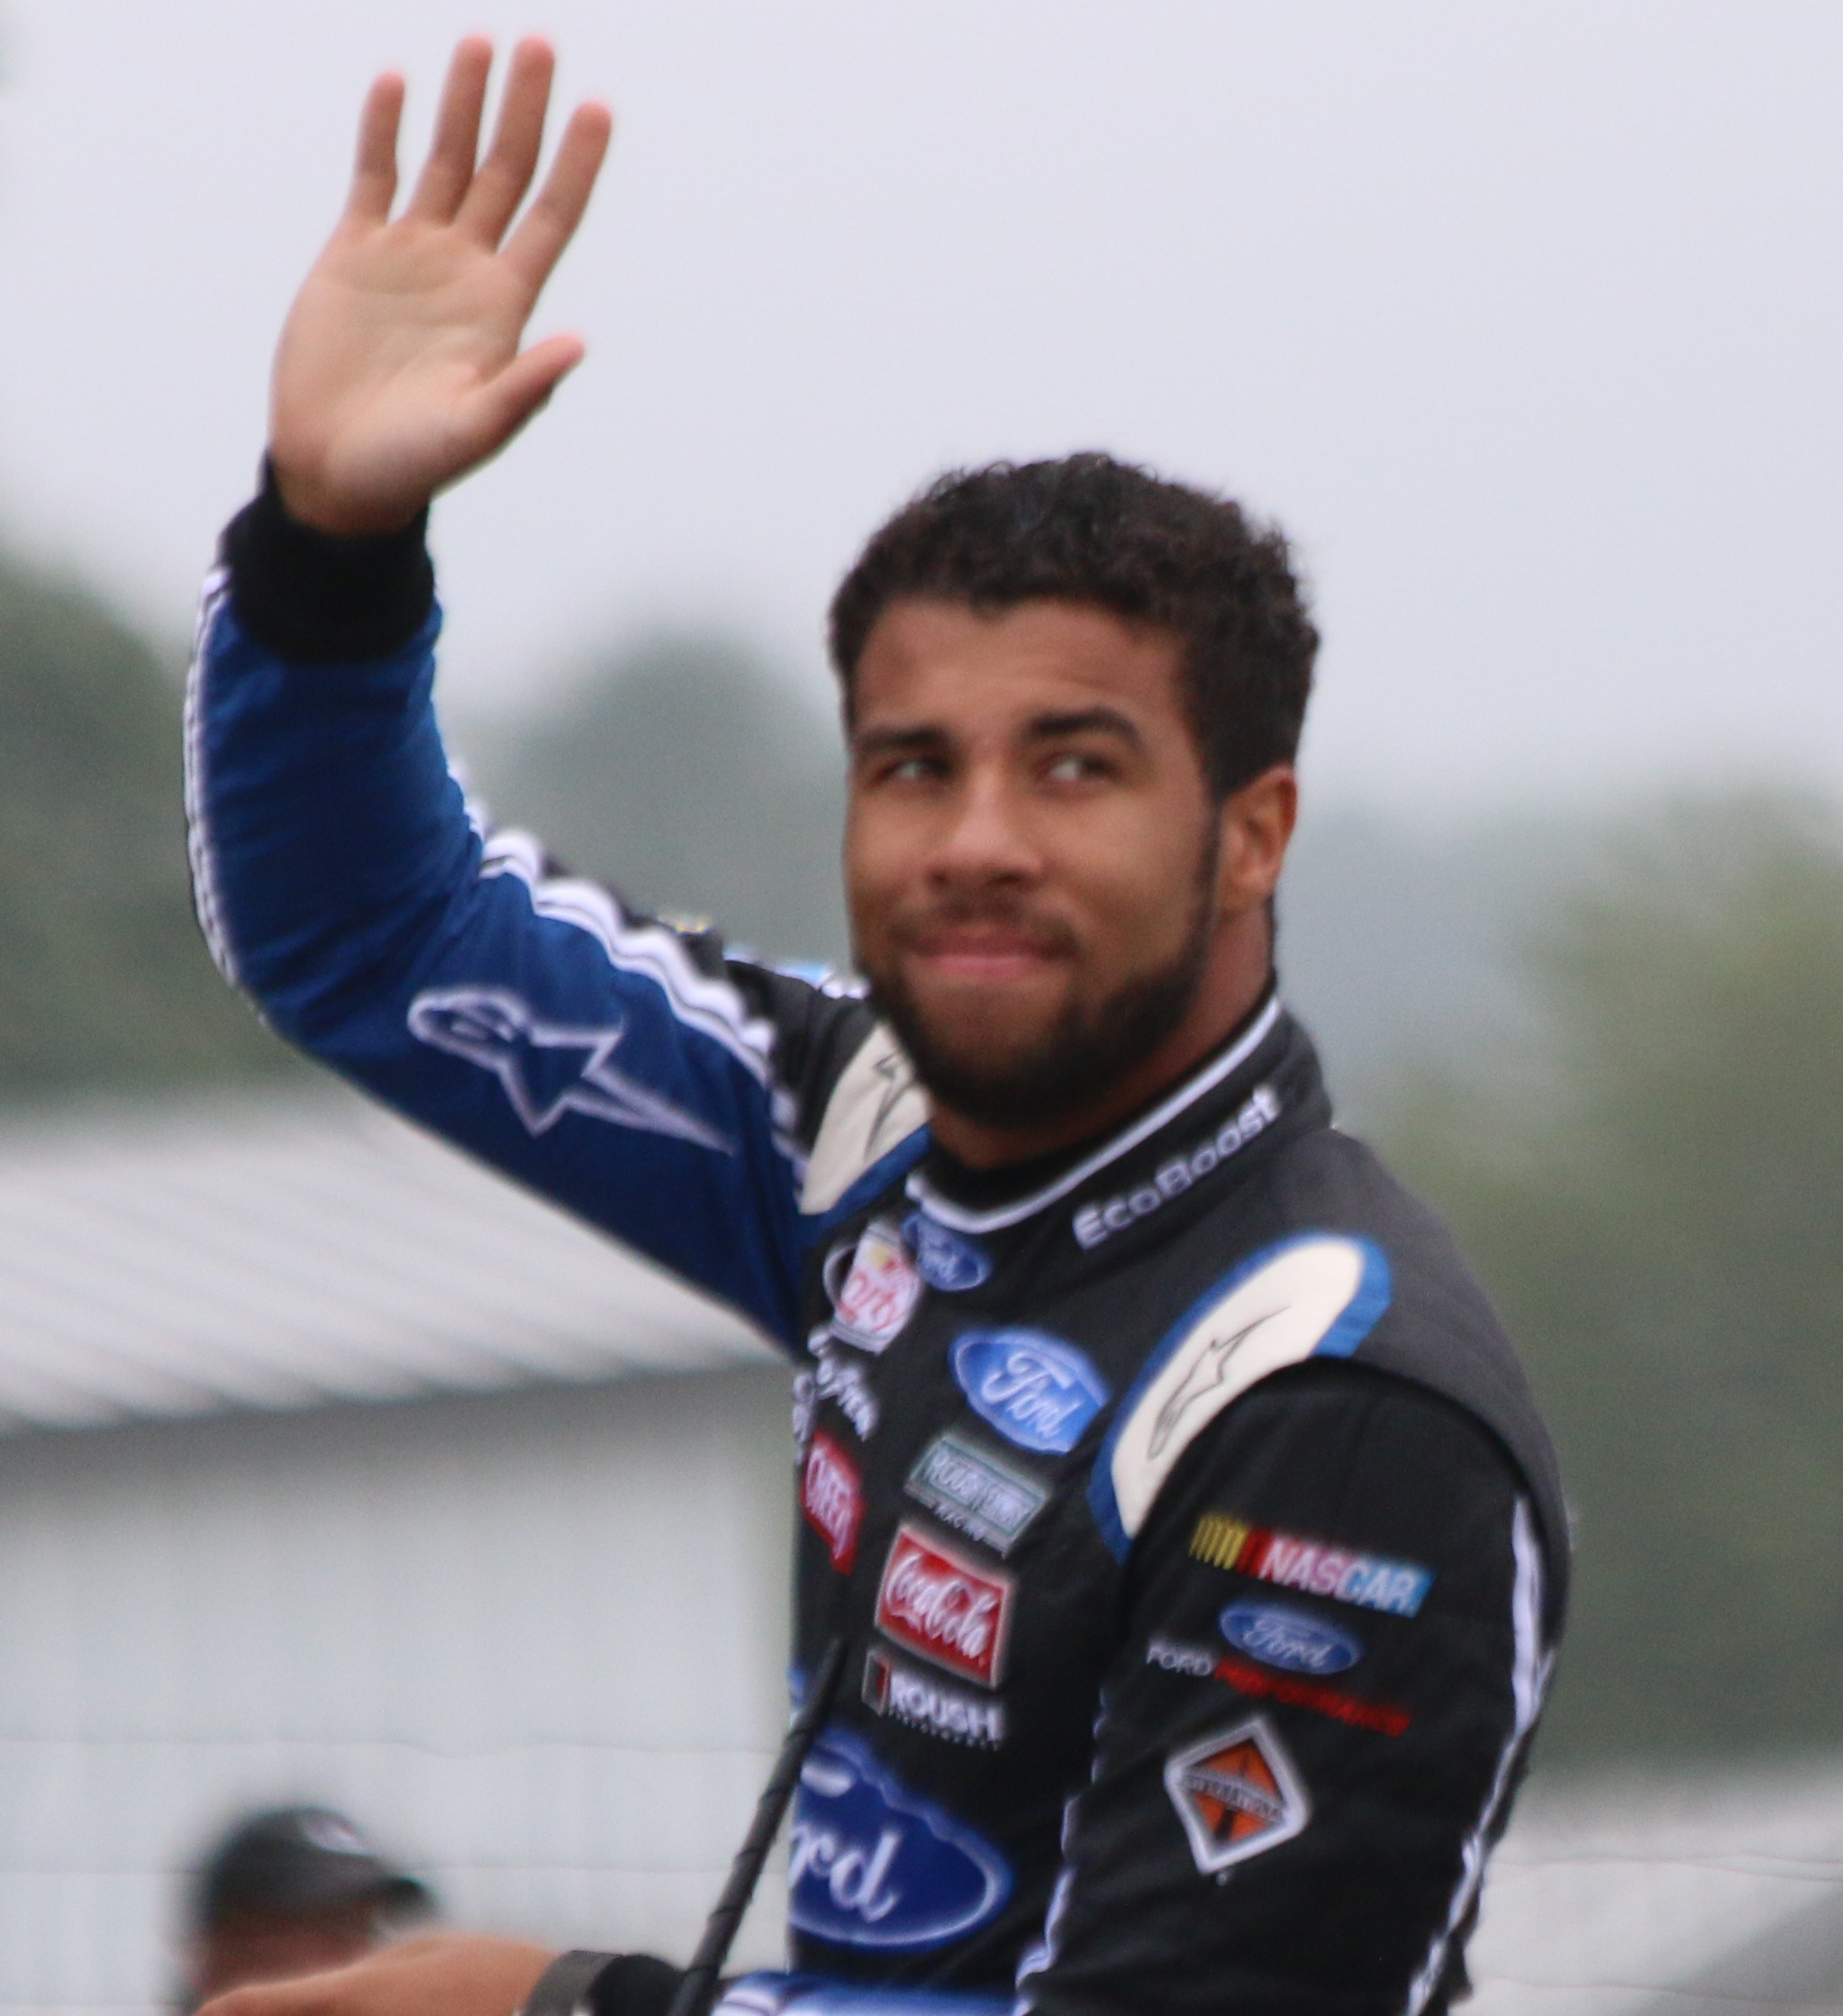 youngest nascar driver right now